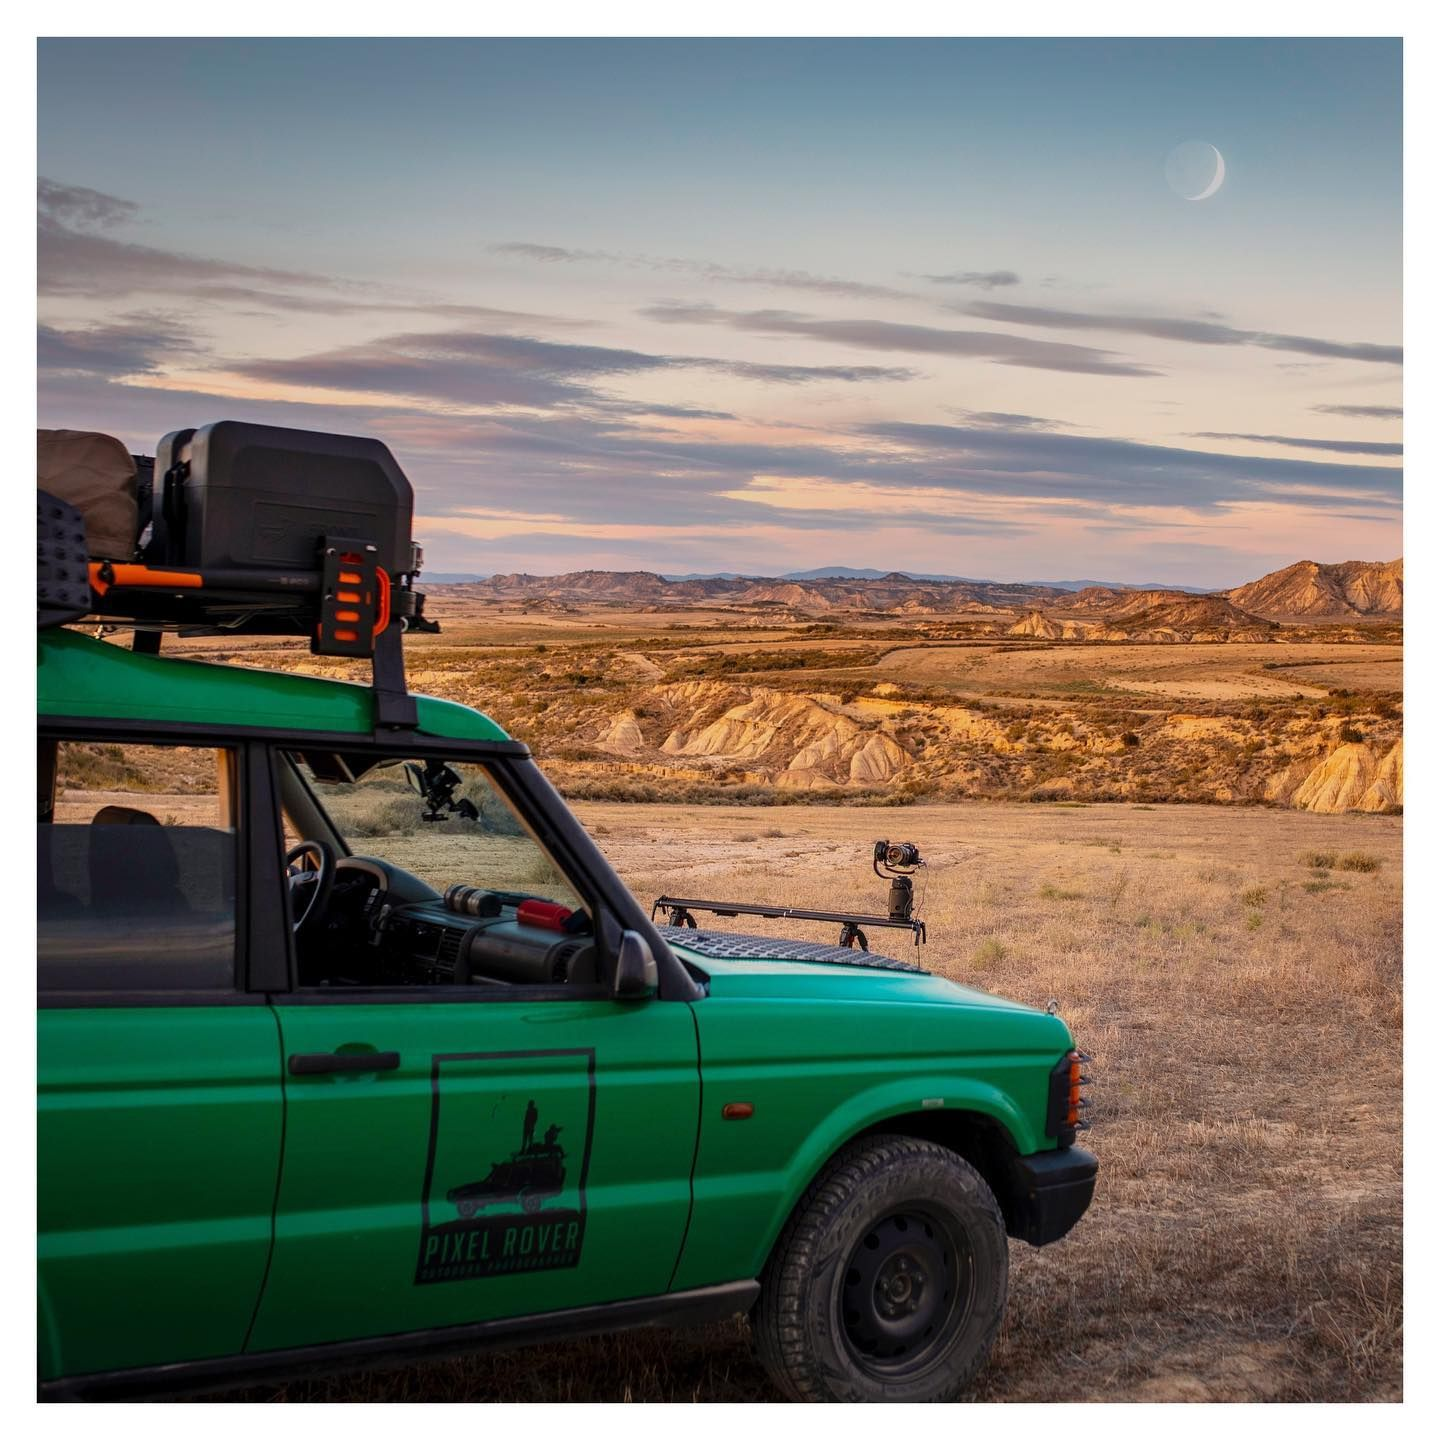 Pin By Pixelrover On Disco In 2020 Land Rover Discovery 2 Off Road Camper Get Outdoors